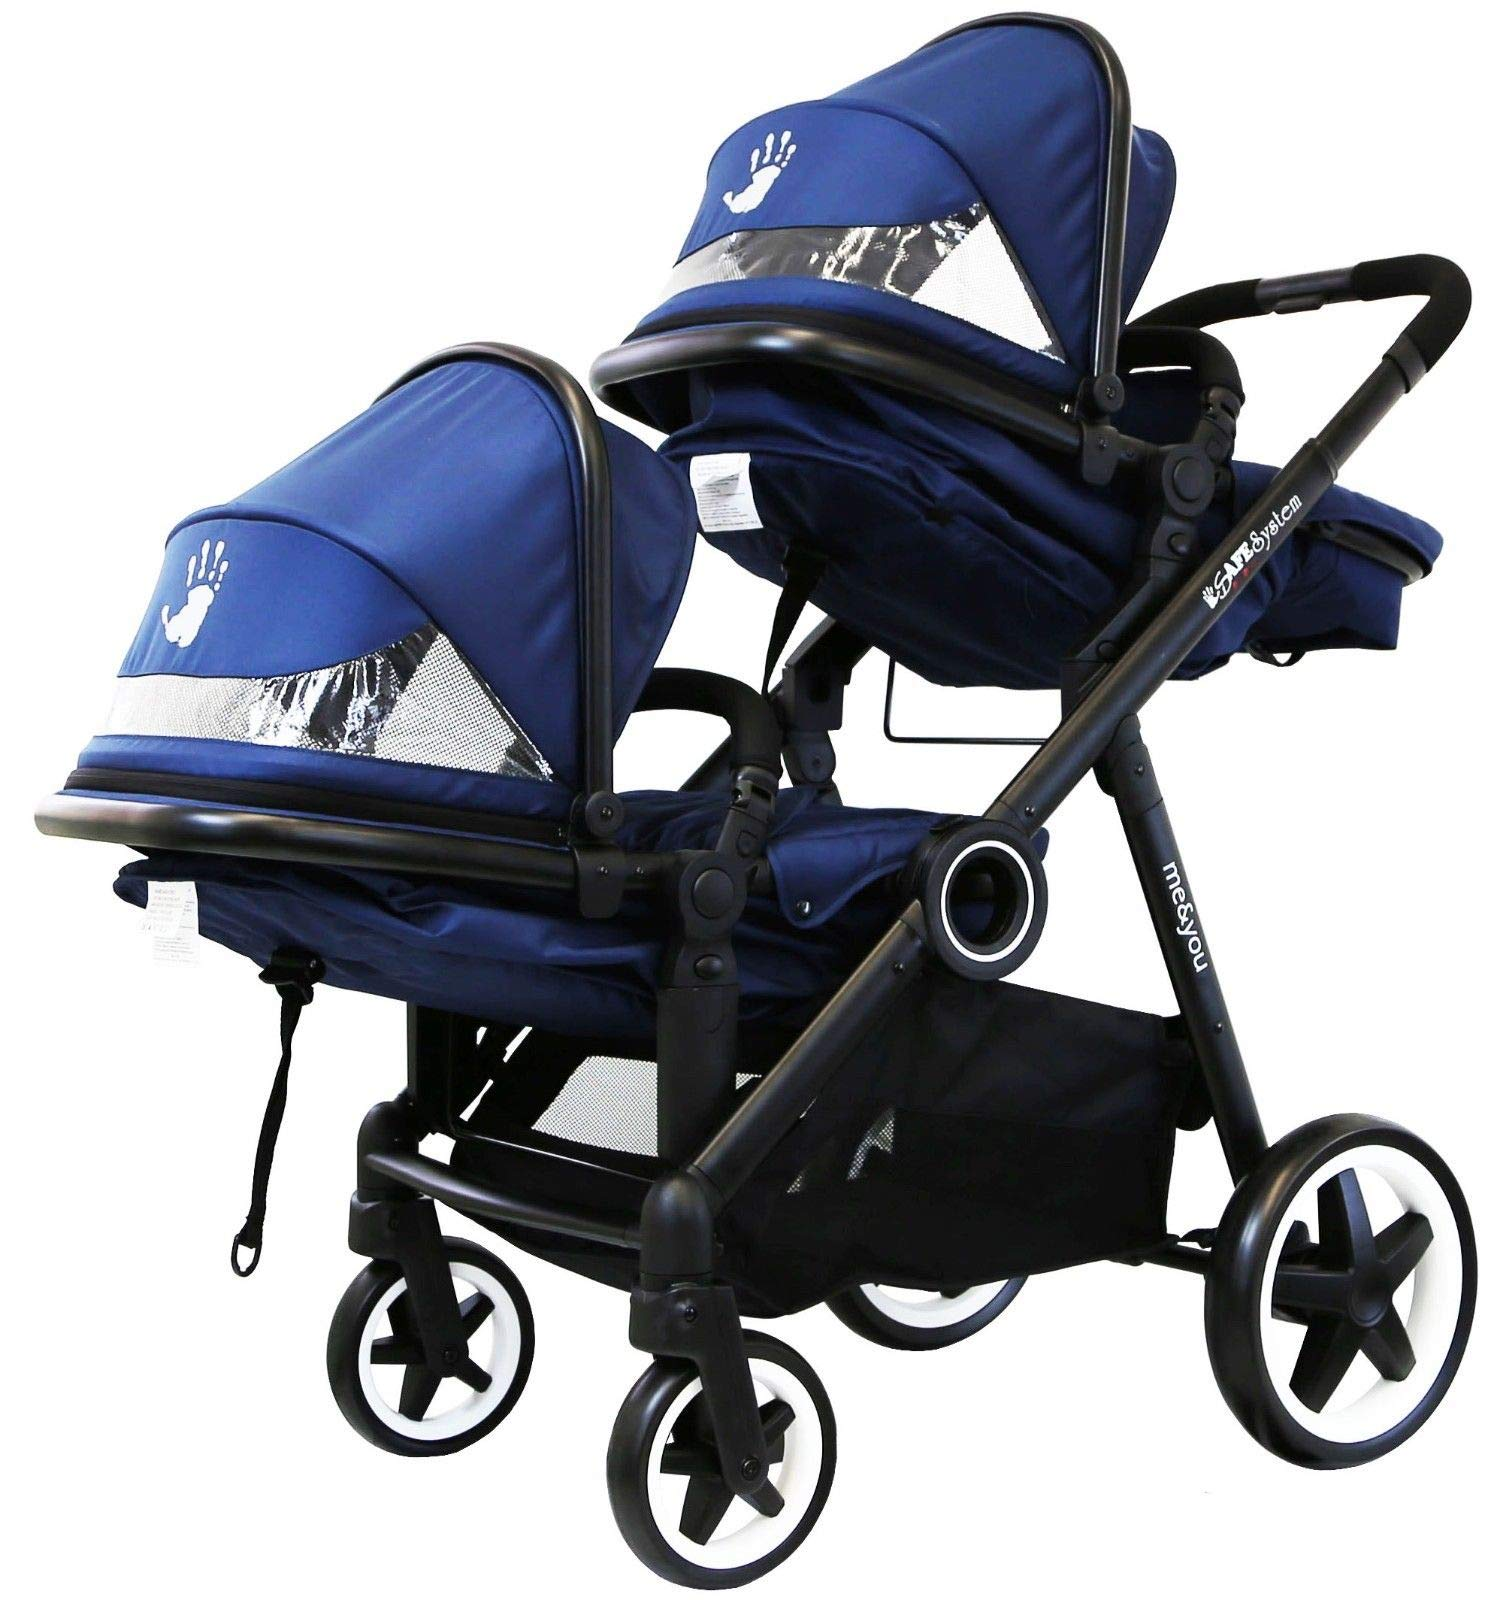 iSafe Me&You Inline Tandem Travel System with Second Seat & Rain Cover - Royal Blue iSafe Sleek & Eye Catching Matte Black Chassis, Weighing Only 16Kgs Easy One Second Fold, For Those Parents On The Go Soft Grip Extendable 3 Height Handle, To Suit Parents Of Any Height 3